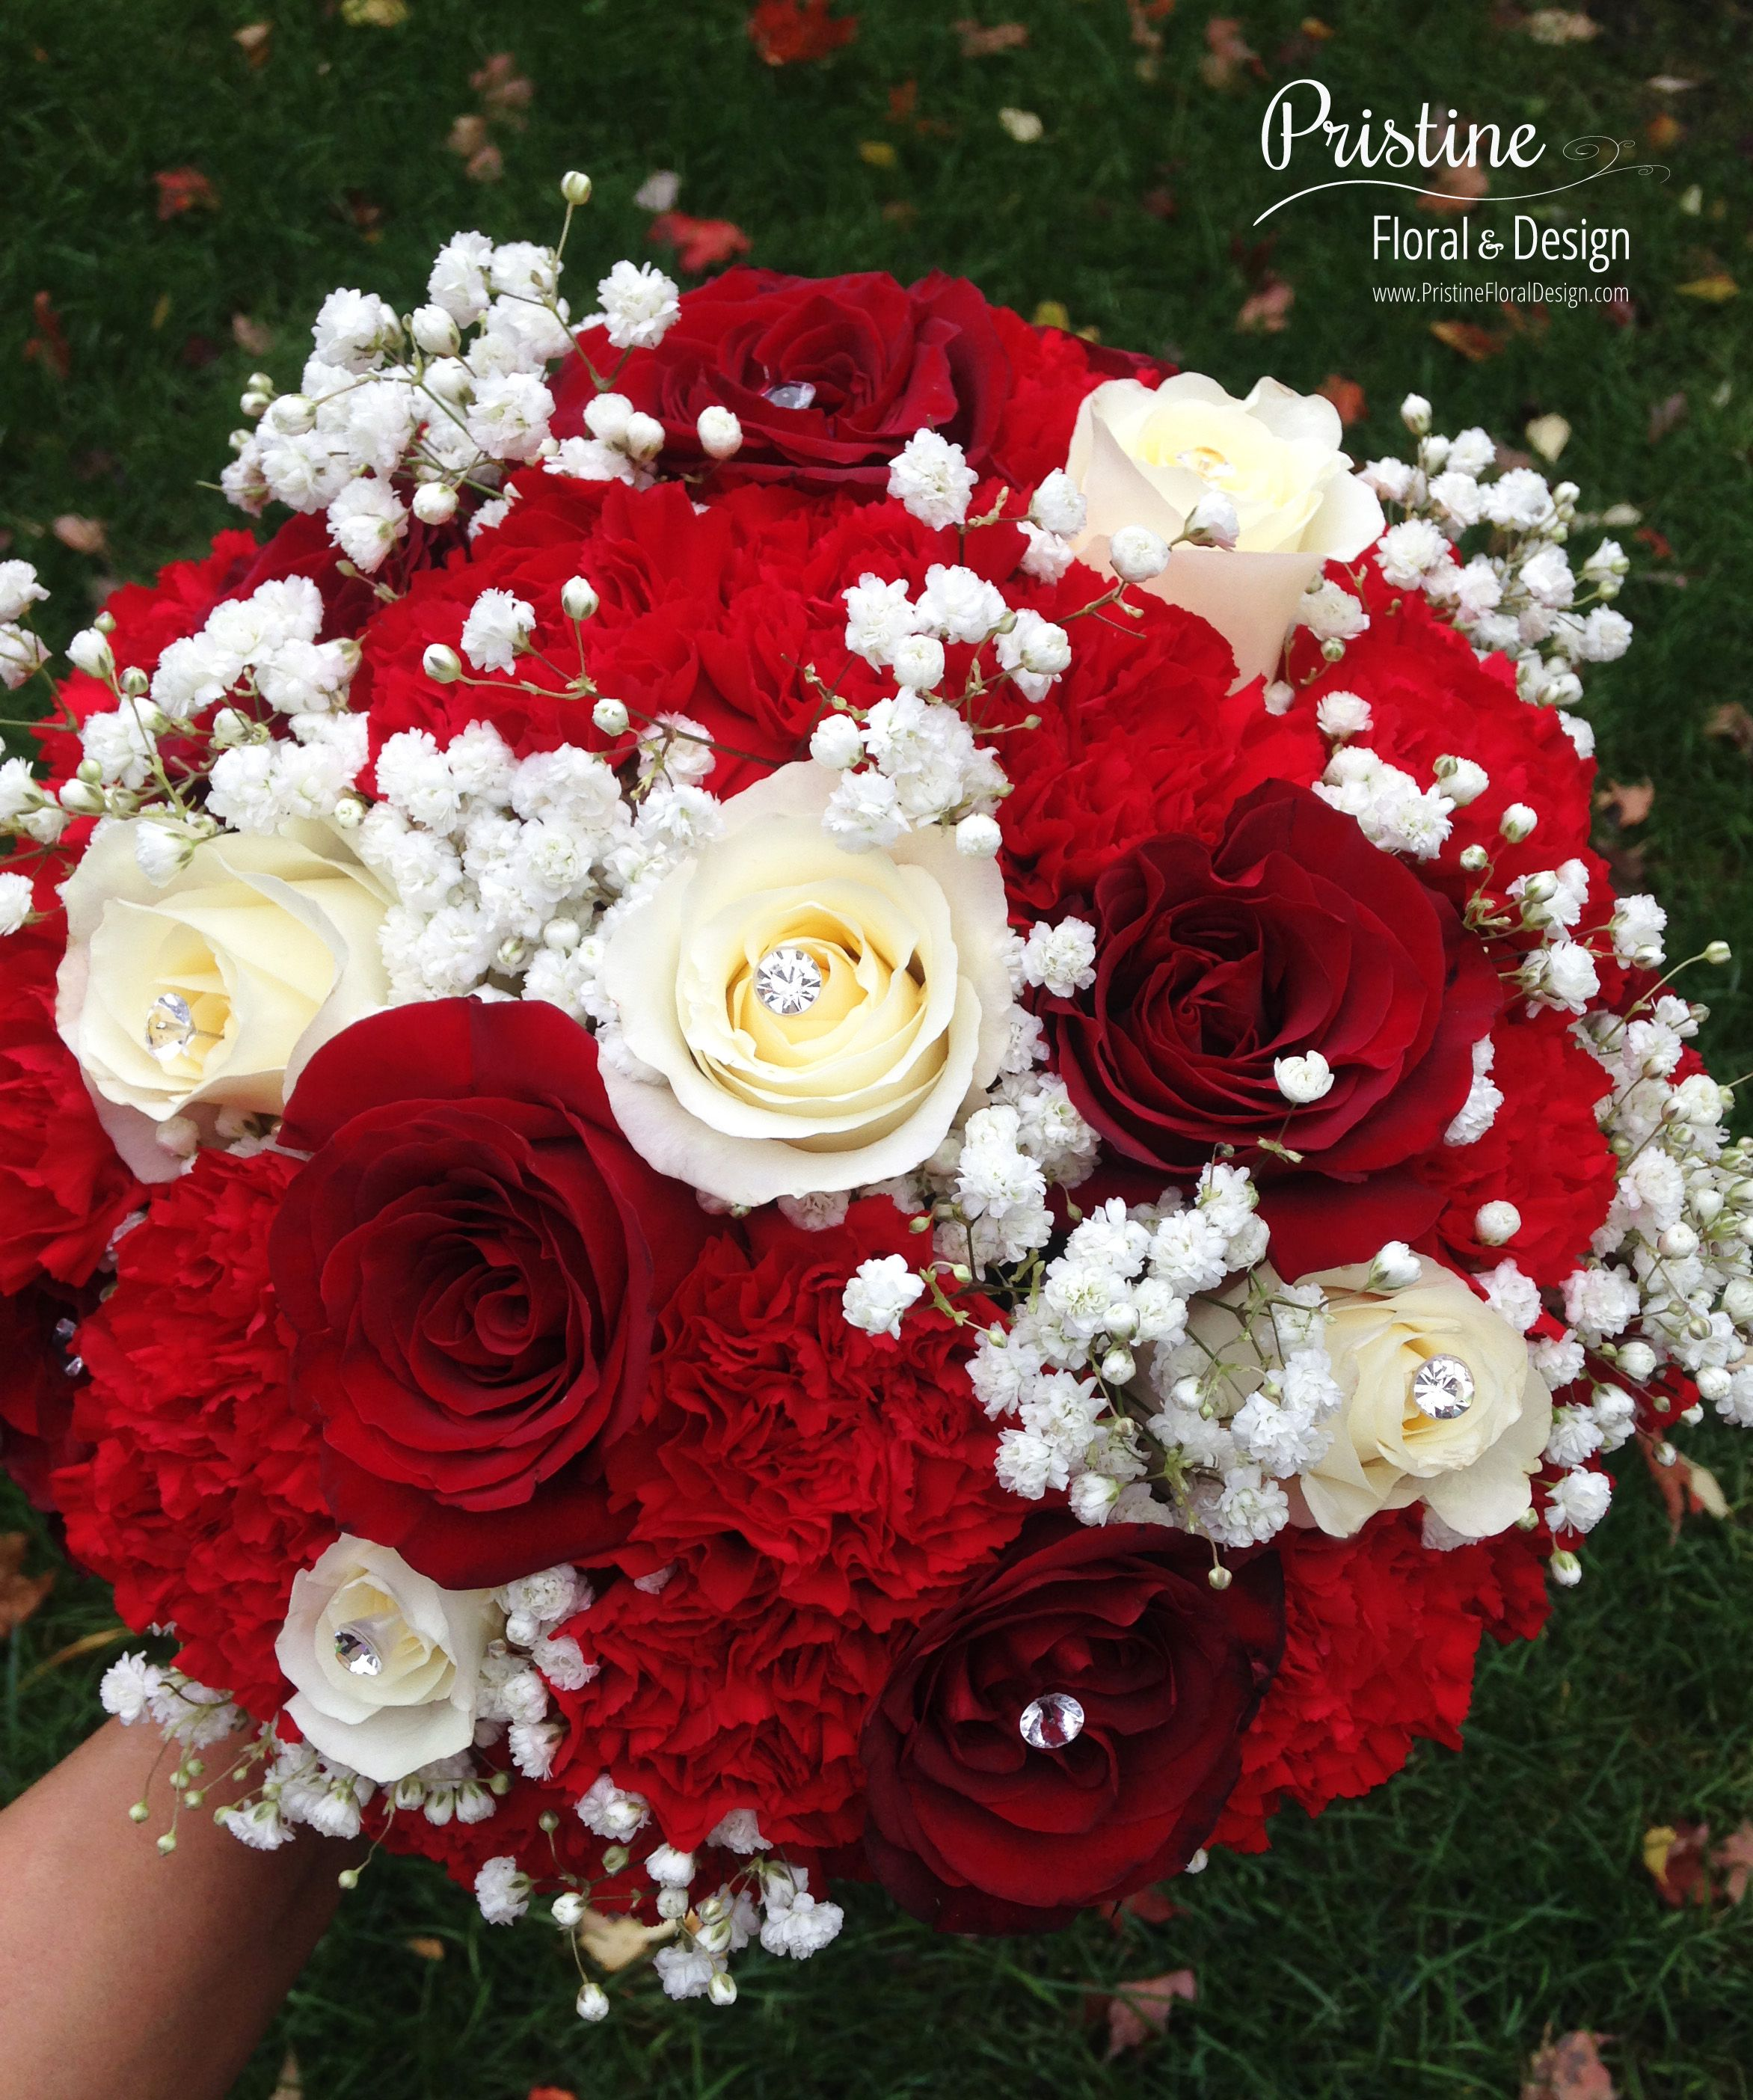 Red Rose Wedding Flowers: Bridal Bouquet Designed Using Red Roses, White Roses